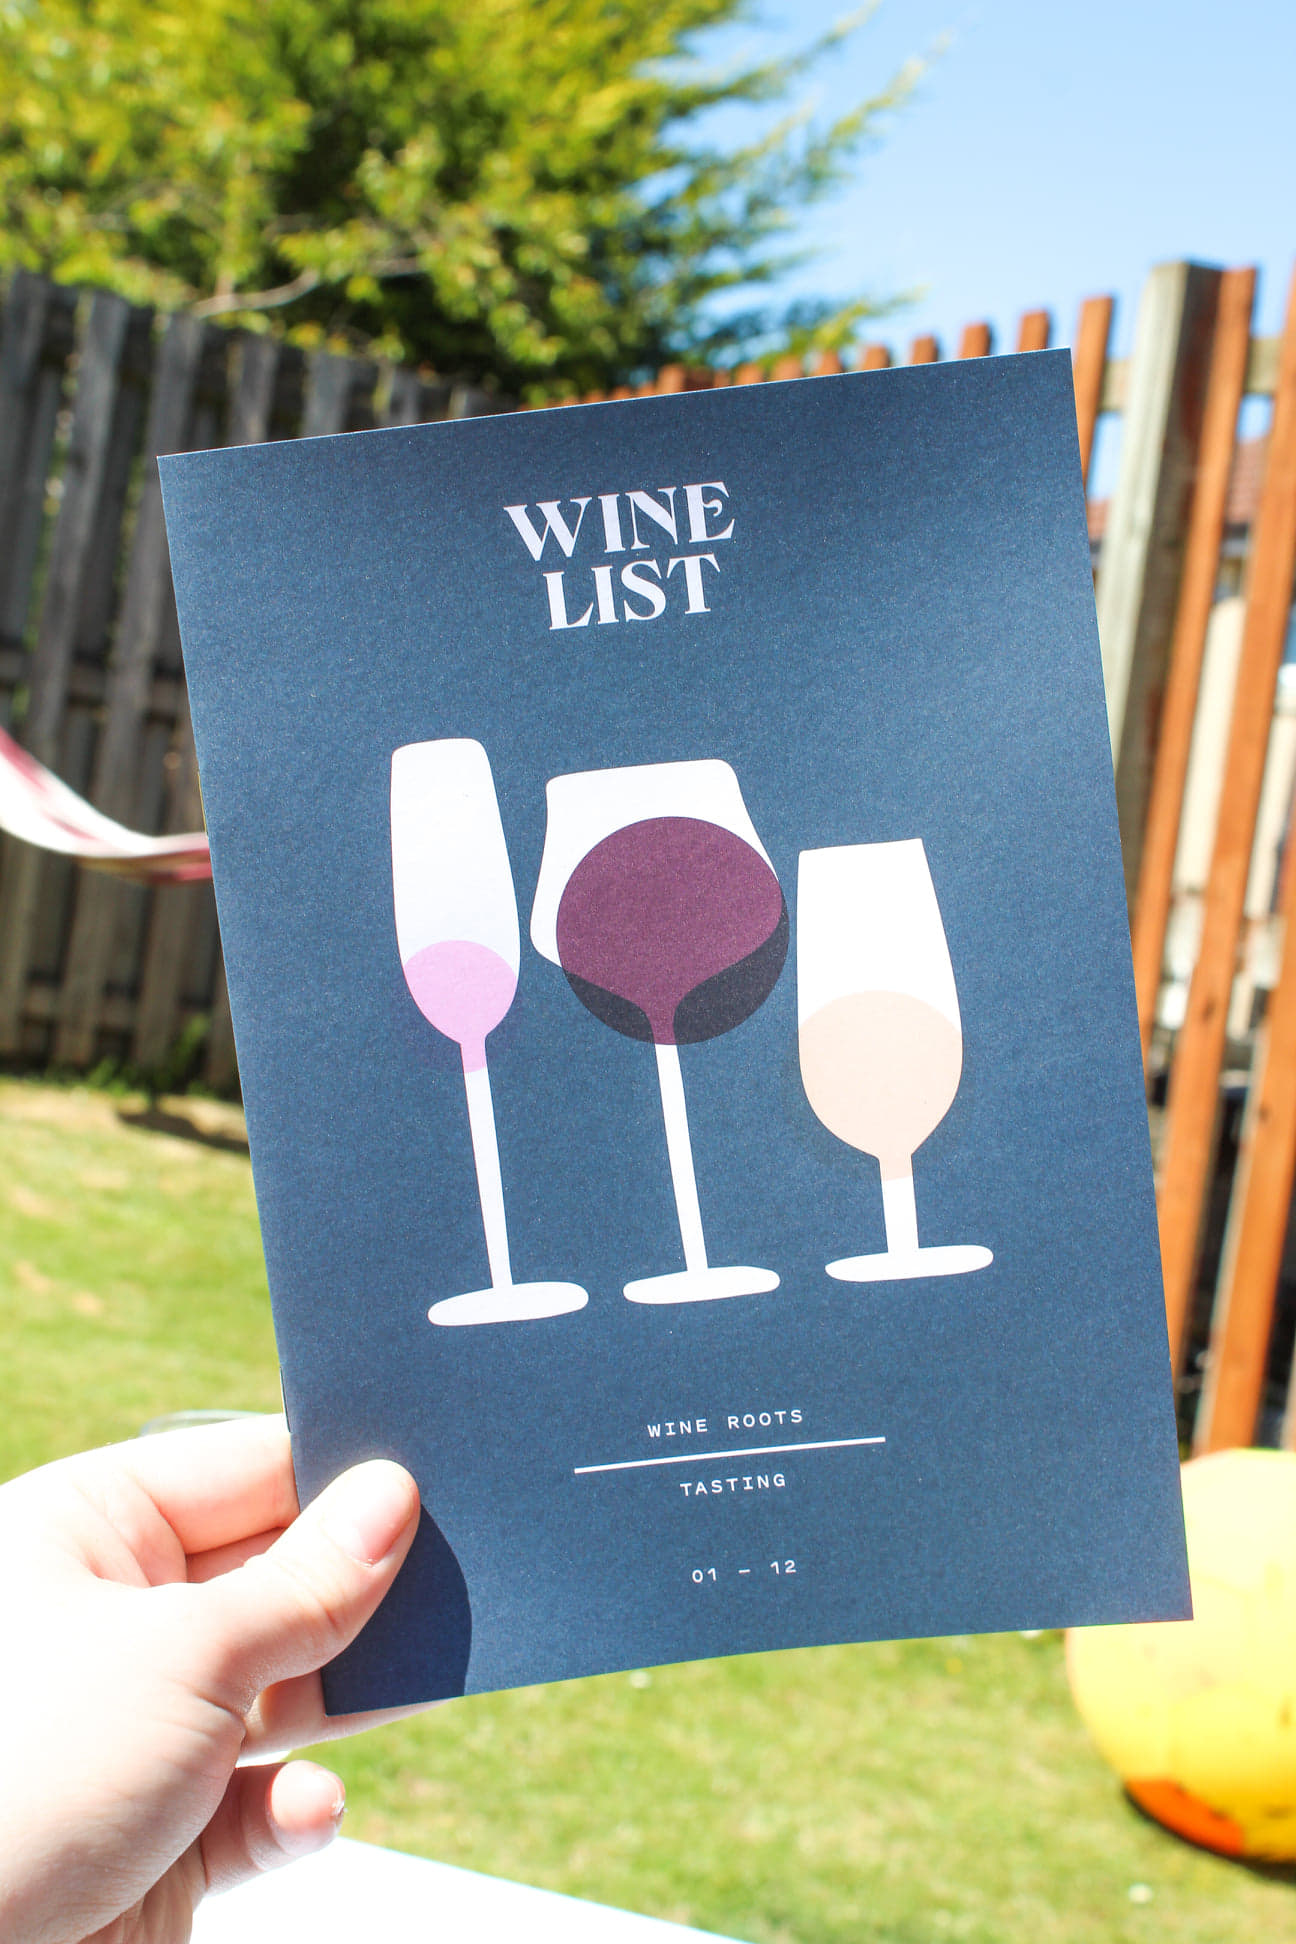 The Wine List: At Home Wine Course